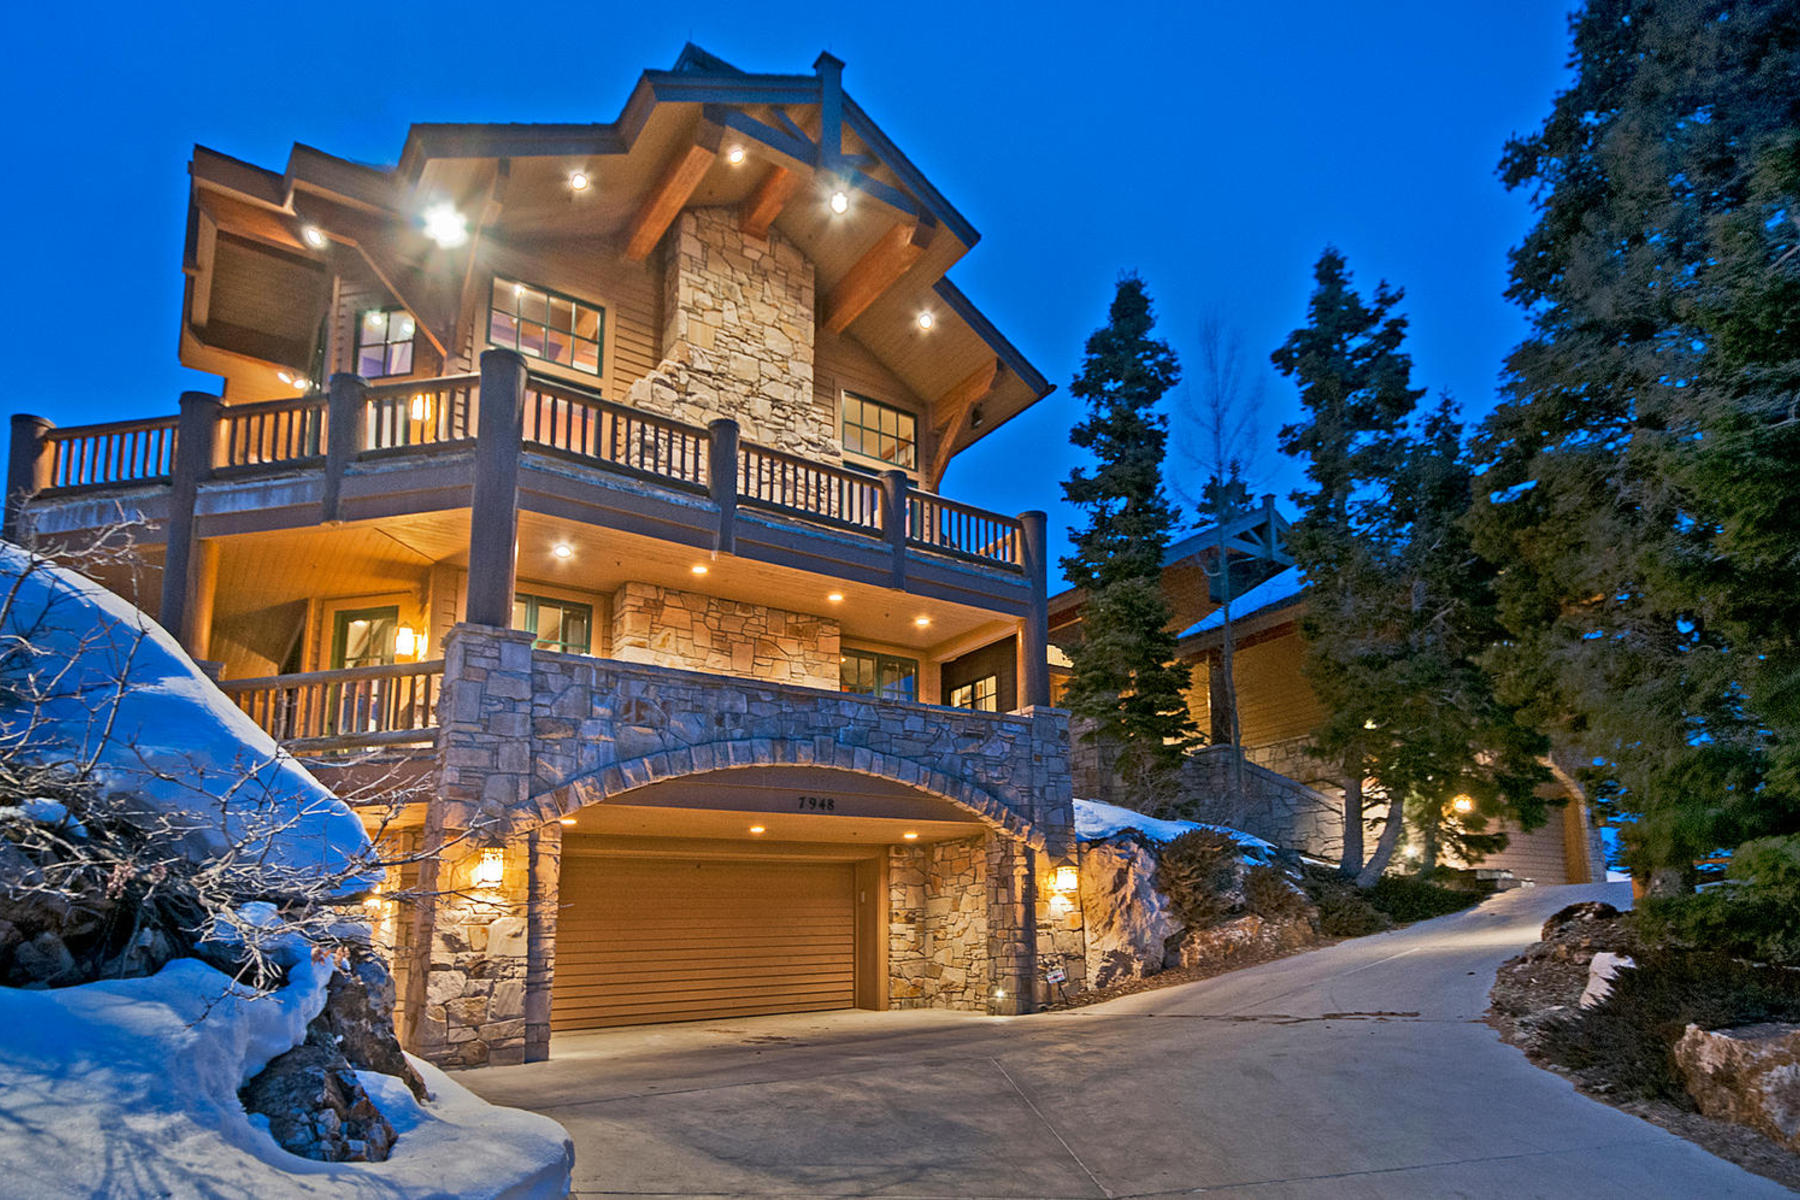 Single Family Home for Sale at Timeless Deer Valley Ski-In Ski-out Mountain Retreat 7948 Red Tail Ct Park City, Utah, 84060 United States